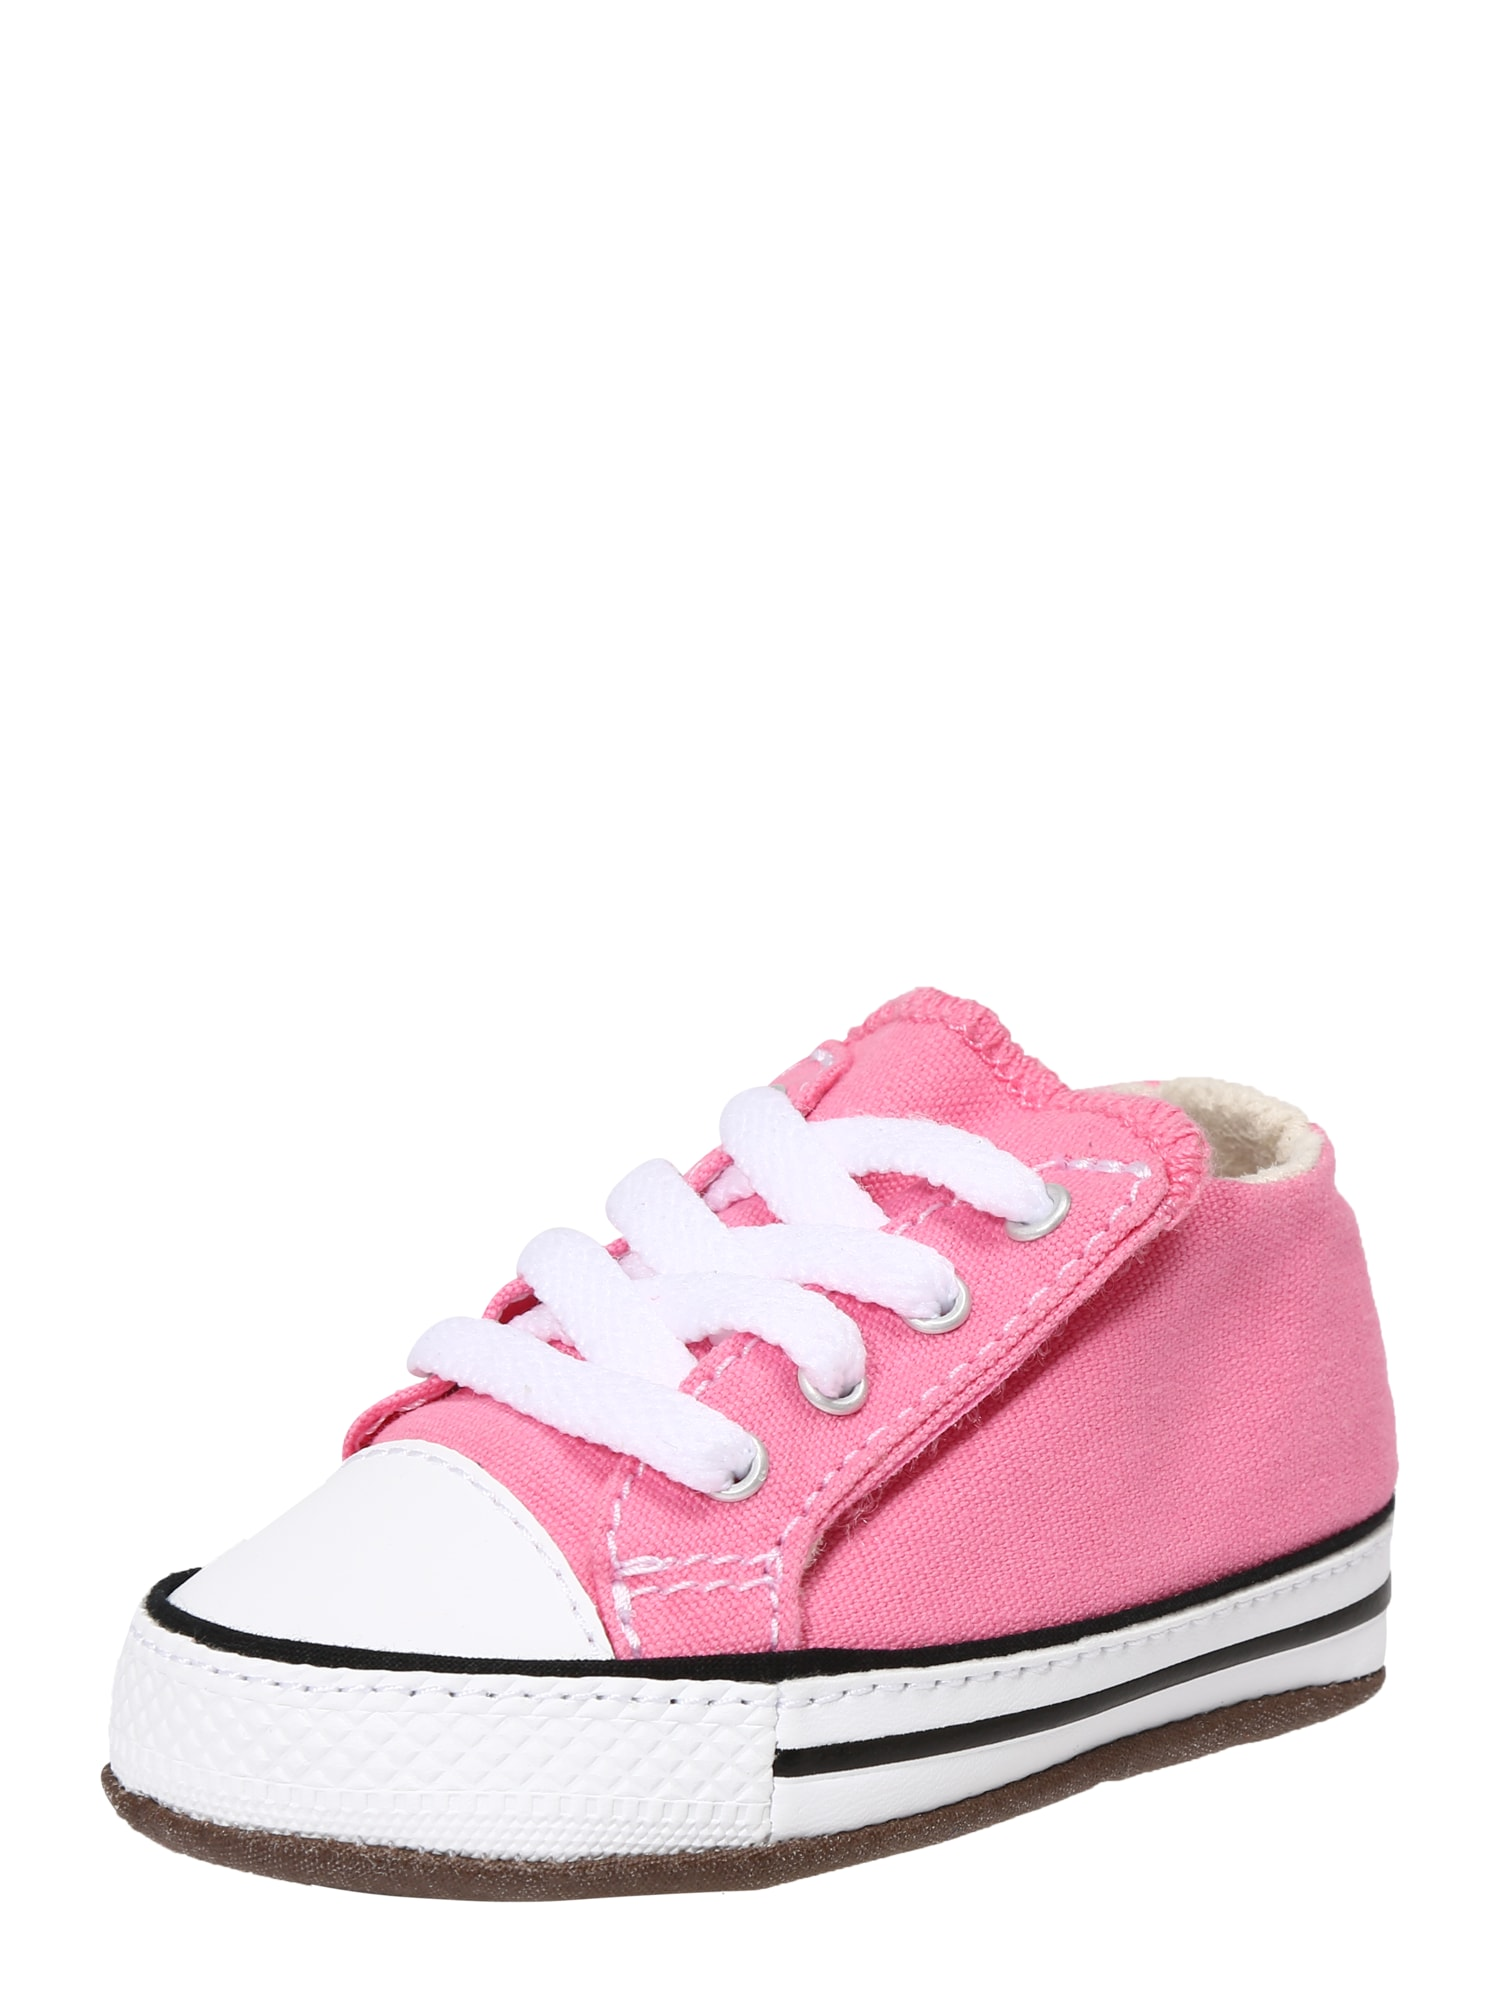 Tenisky CHUCK TAYLOR ALL STAR CRIBSTER CANVAS pink CONVERSE